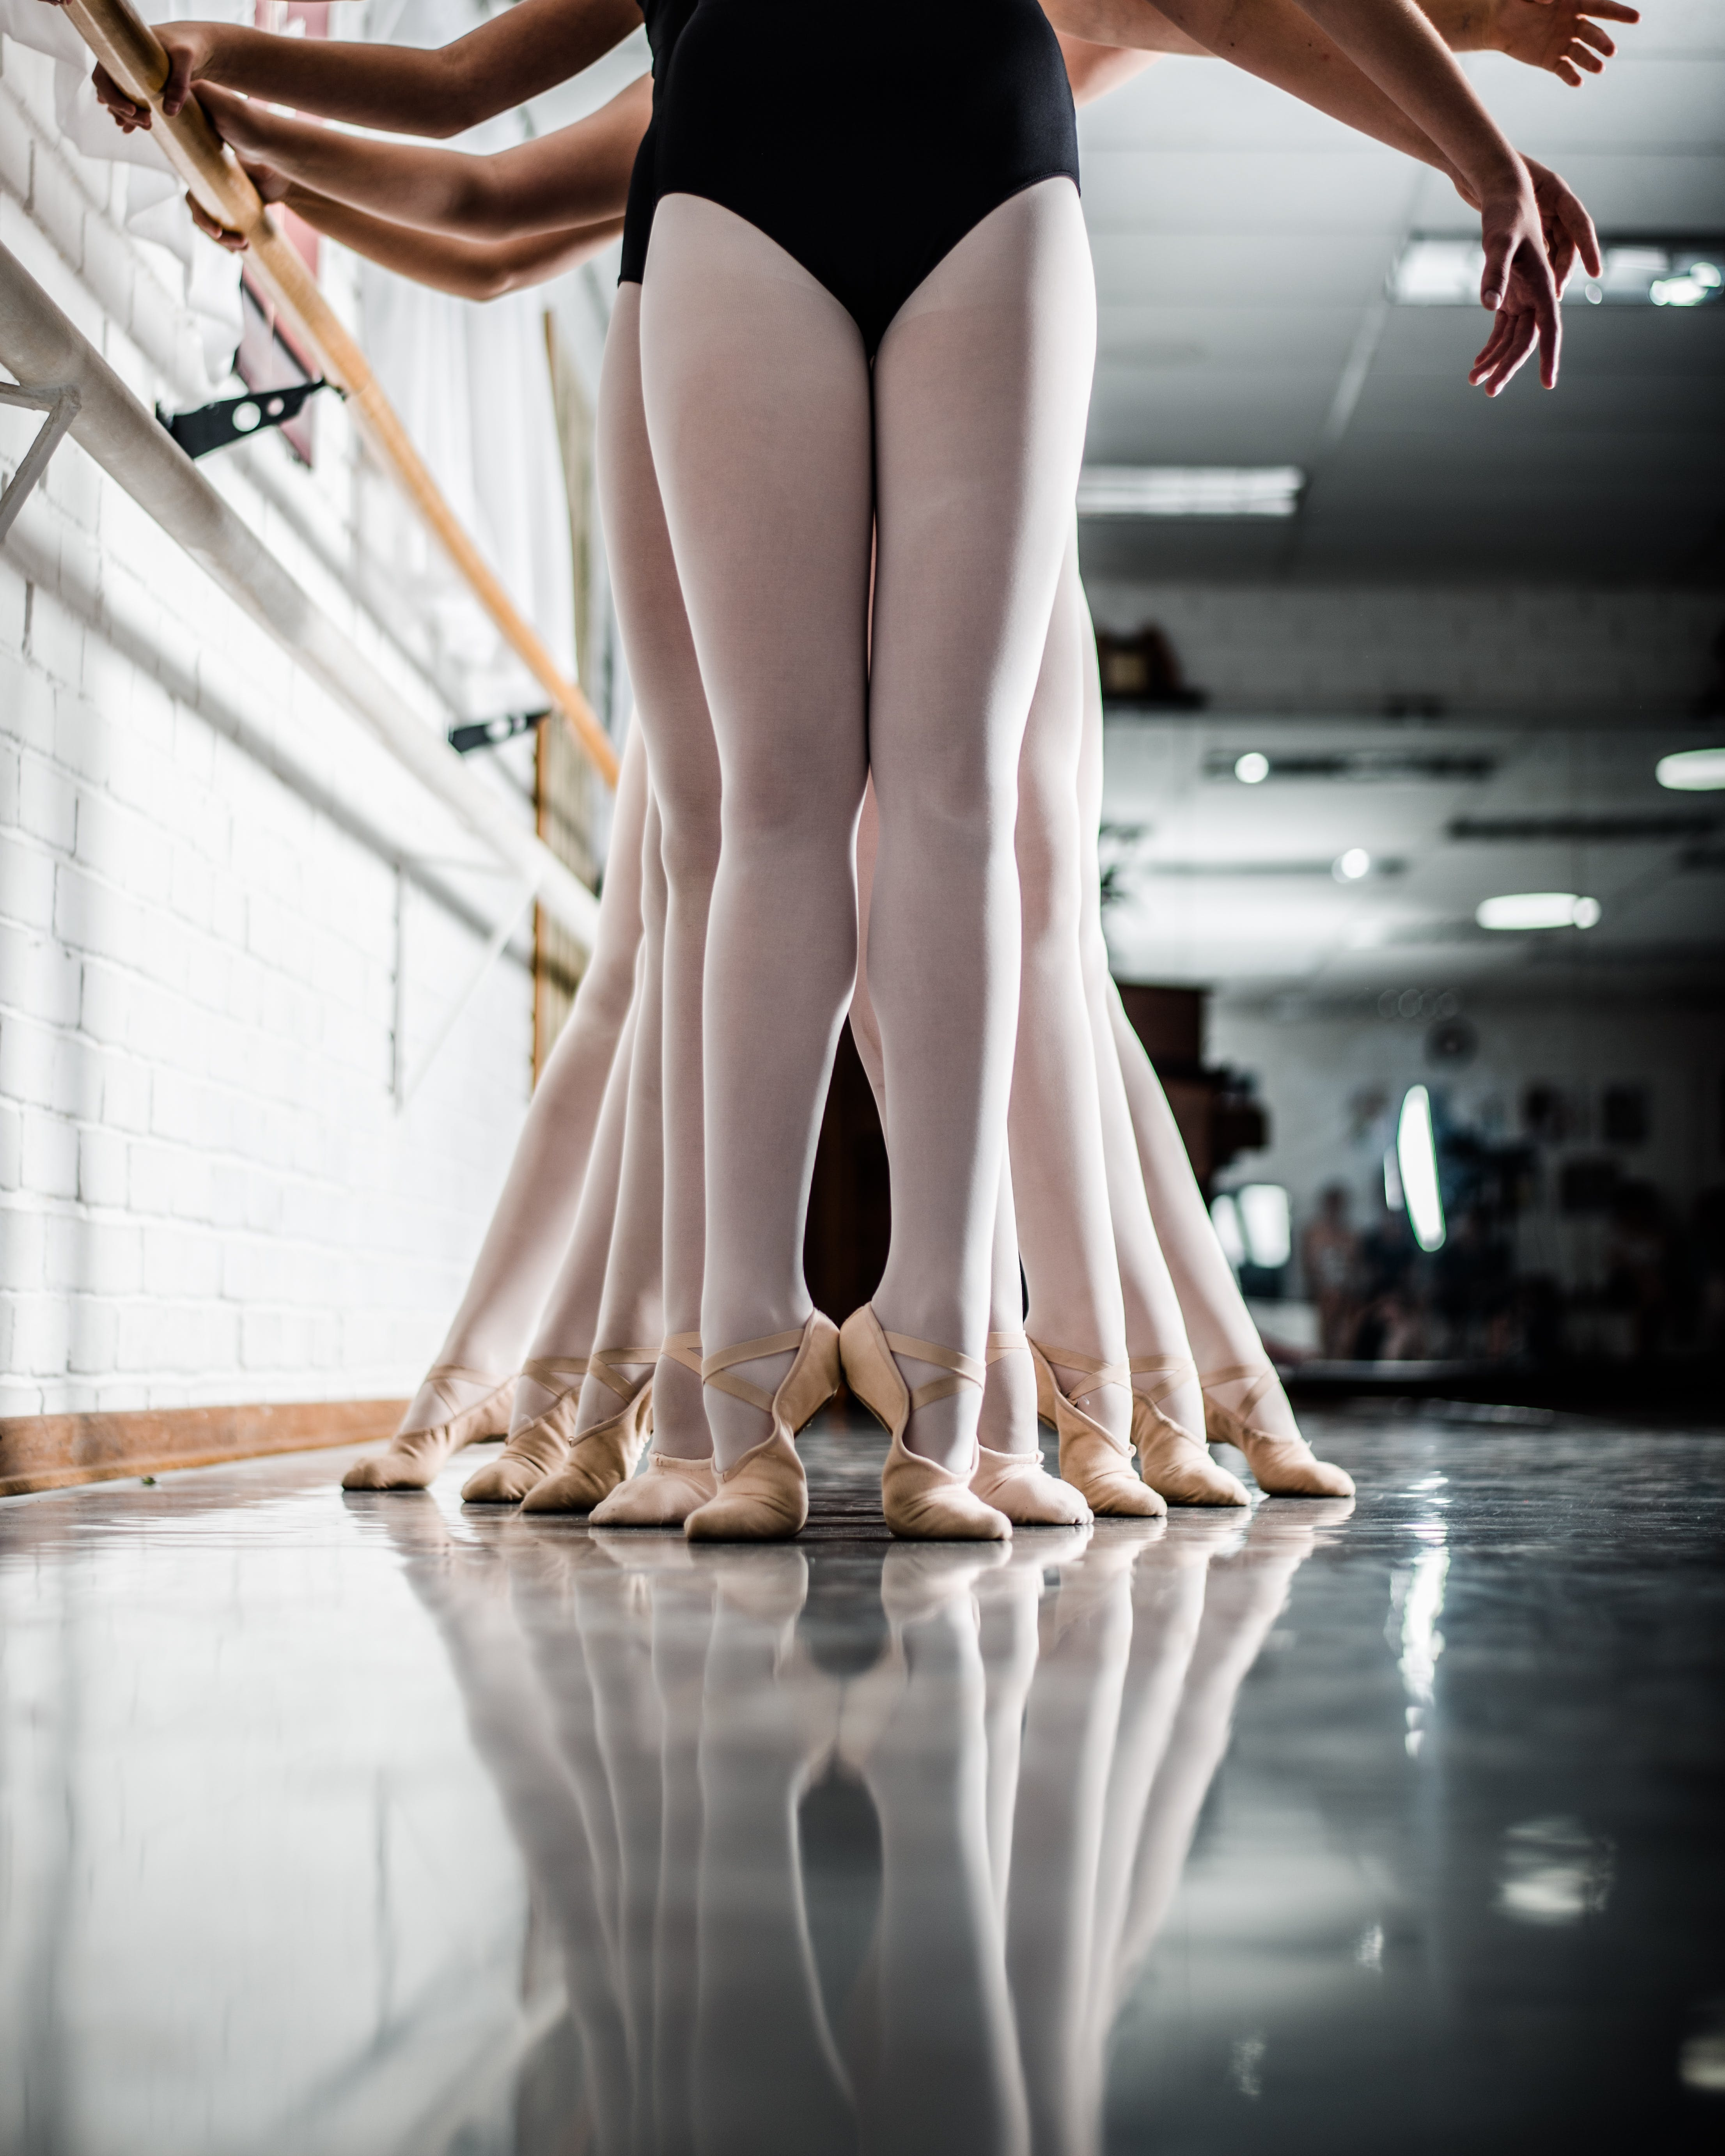 Ballerinas Fall in Line Holding Side Handles